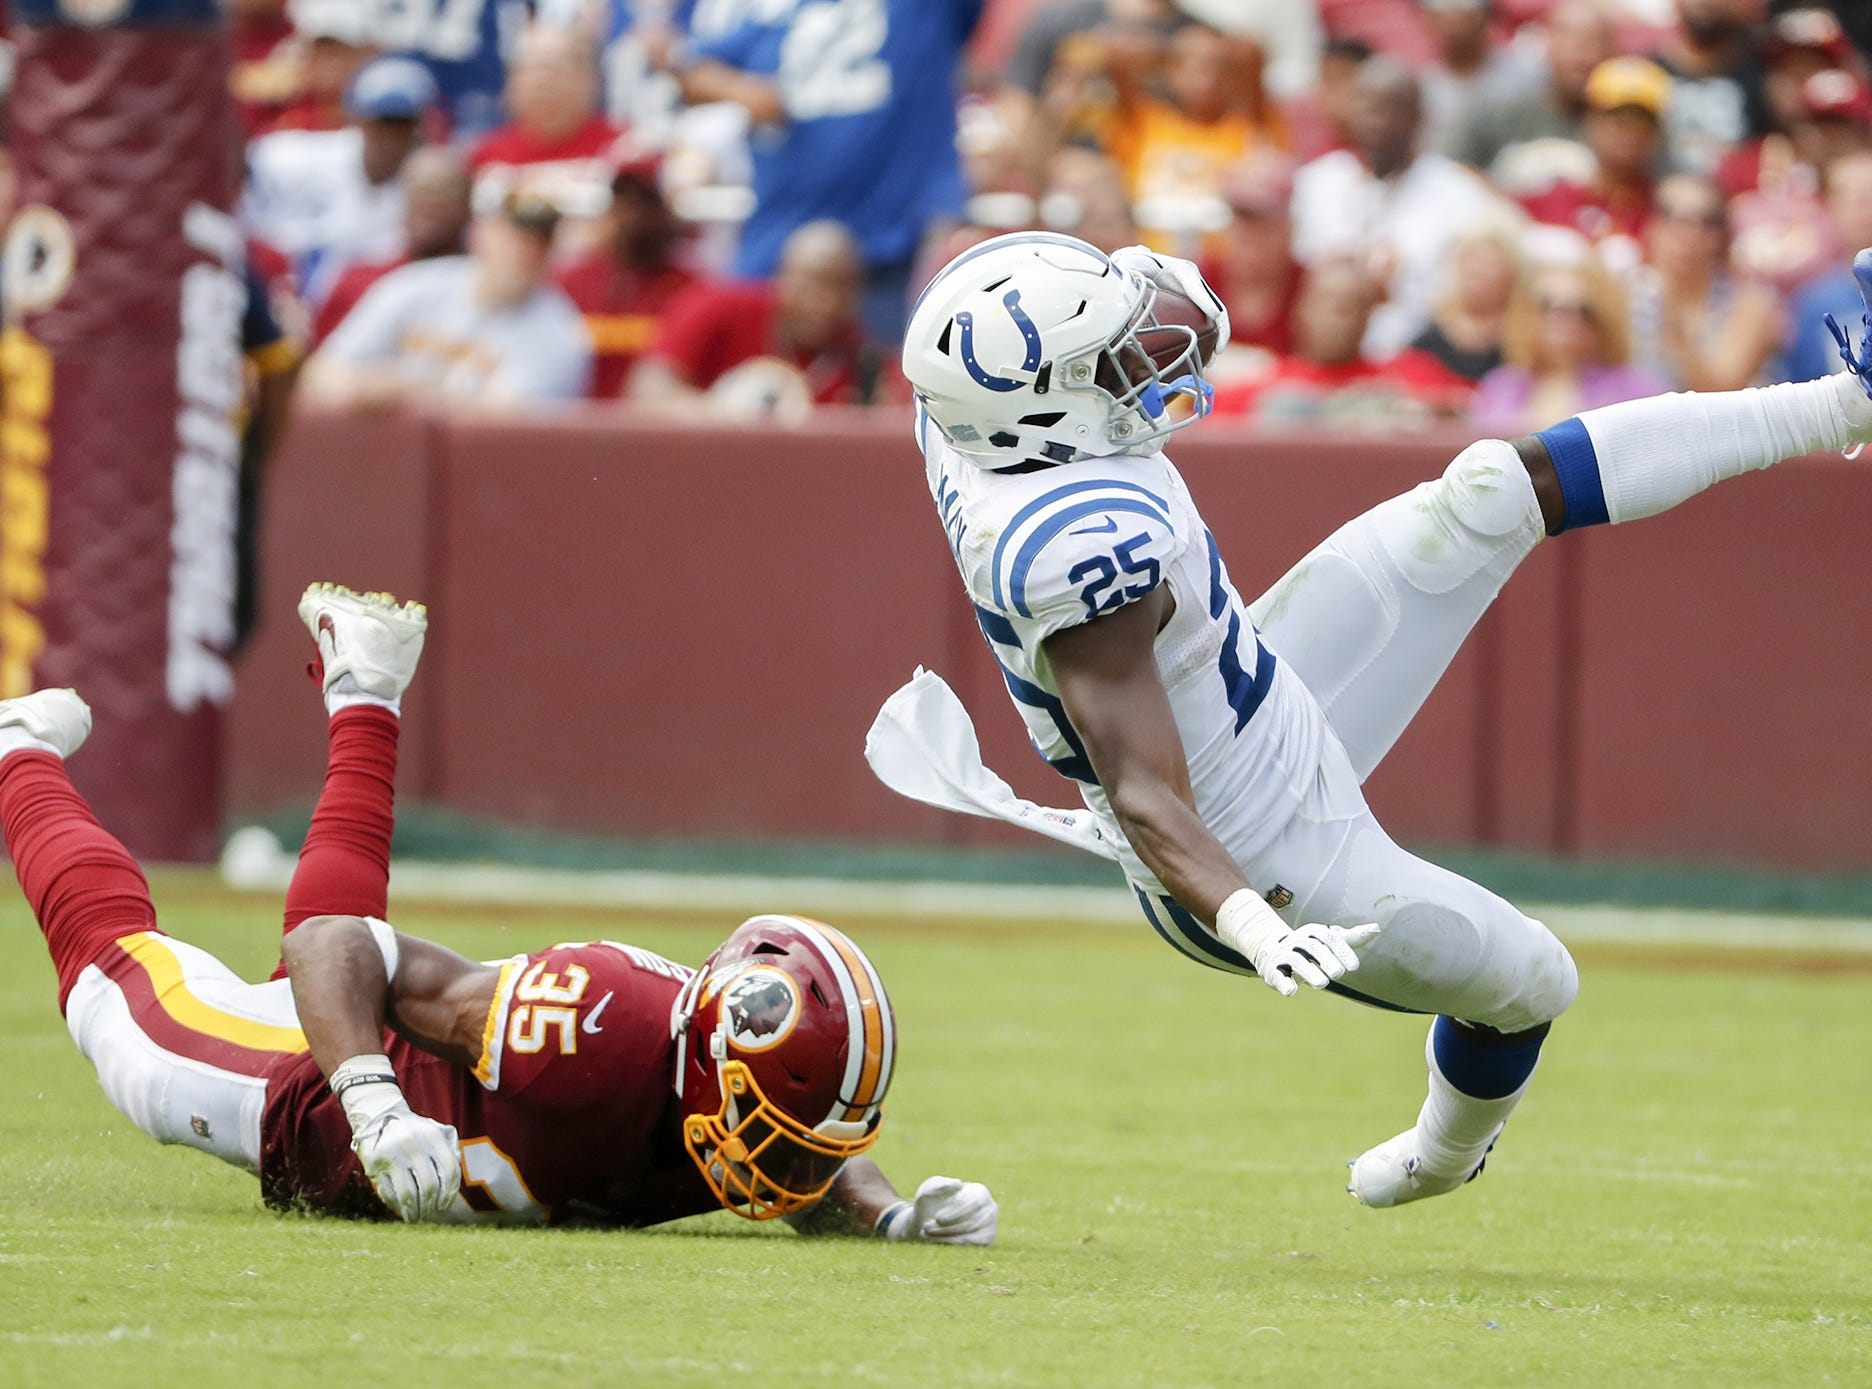 Indianapolis Colts running back Marlon Mack (25) looses his footing as he works to elude the tackling efforts of Washington Redskins defensive back Montae Nicholson (35) during second half action. The Indianapolis Colts play the Washington Redskins at FedEx Field in Landover, MD., Sunday, Sept. 16, 2018. Colts won the game 21-9.